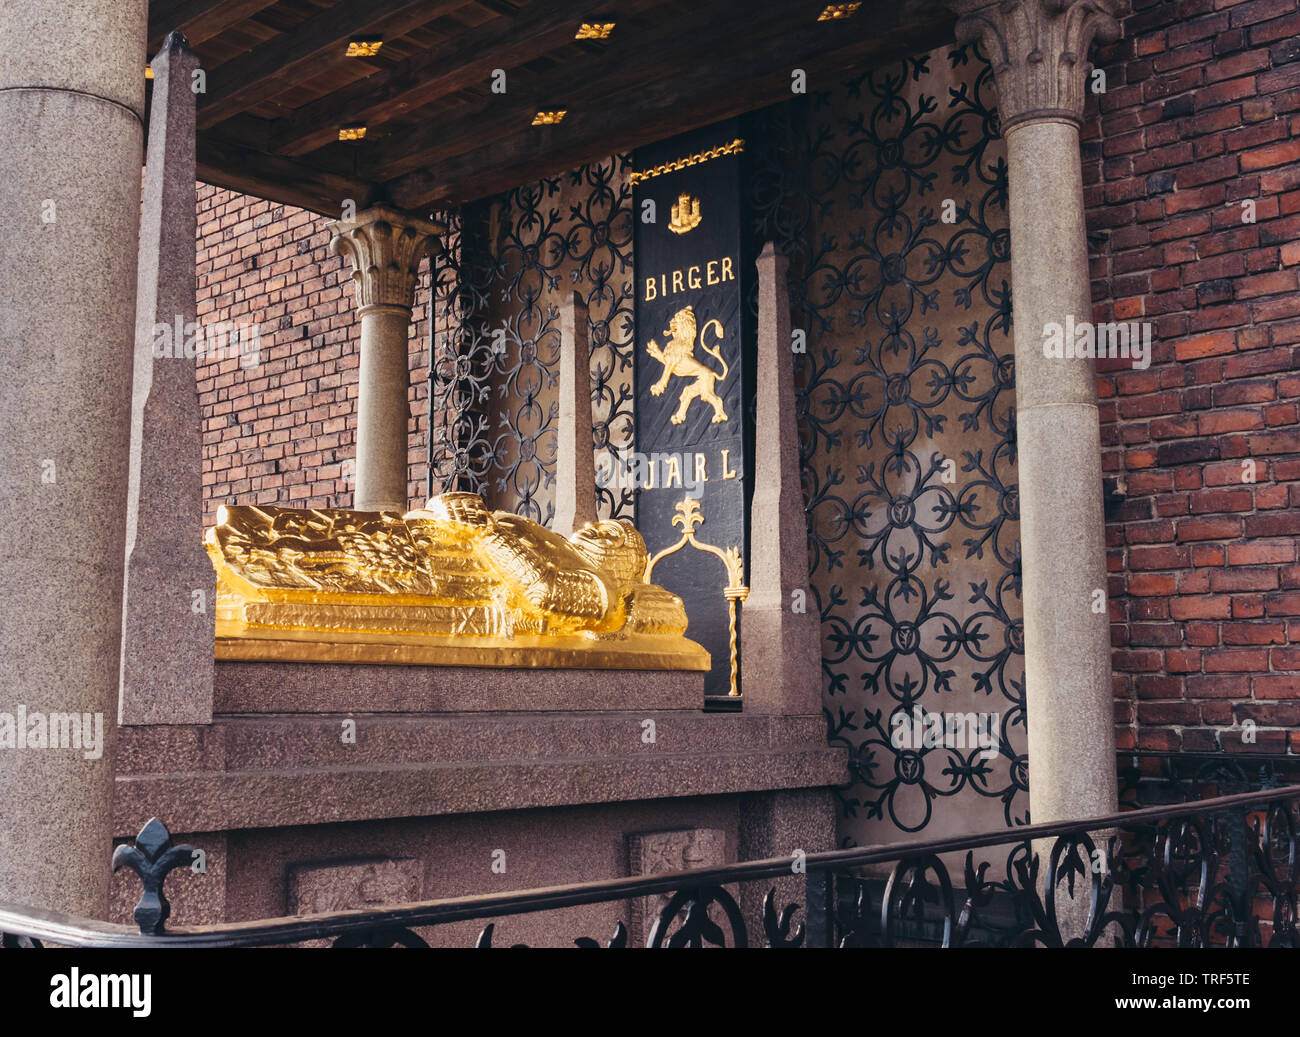 Editorial 03.27.2019 Stockholm Sweden Tomb of Birger Jarl, the founder of the city - Stock Image